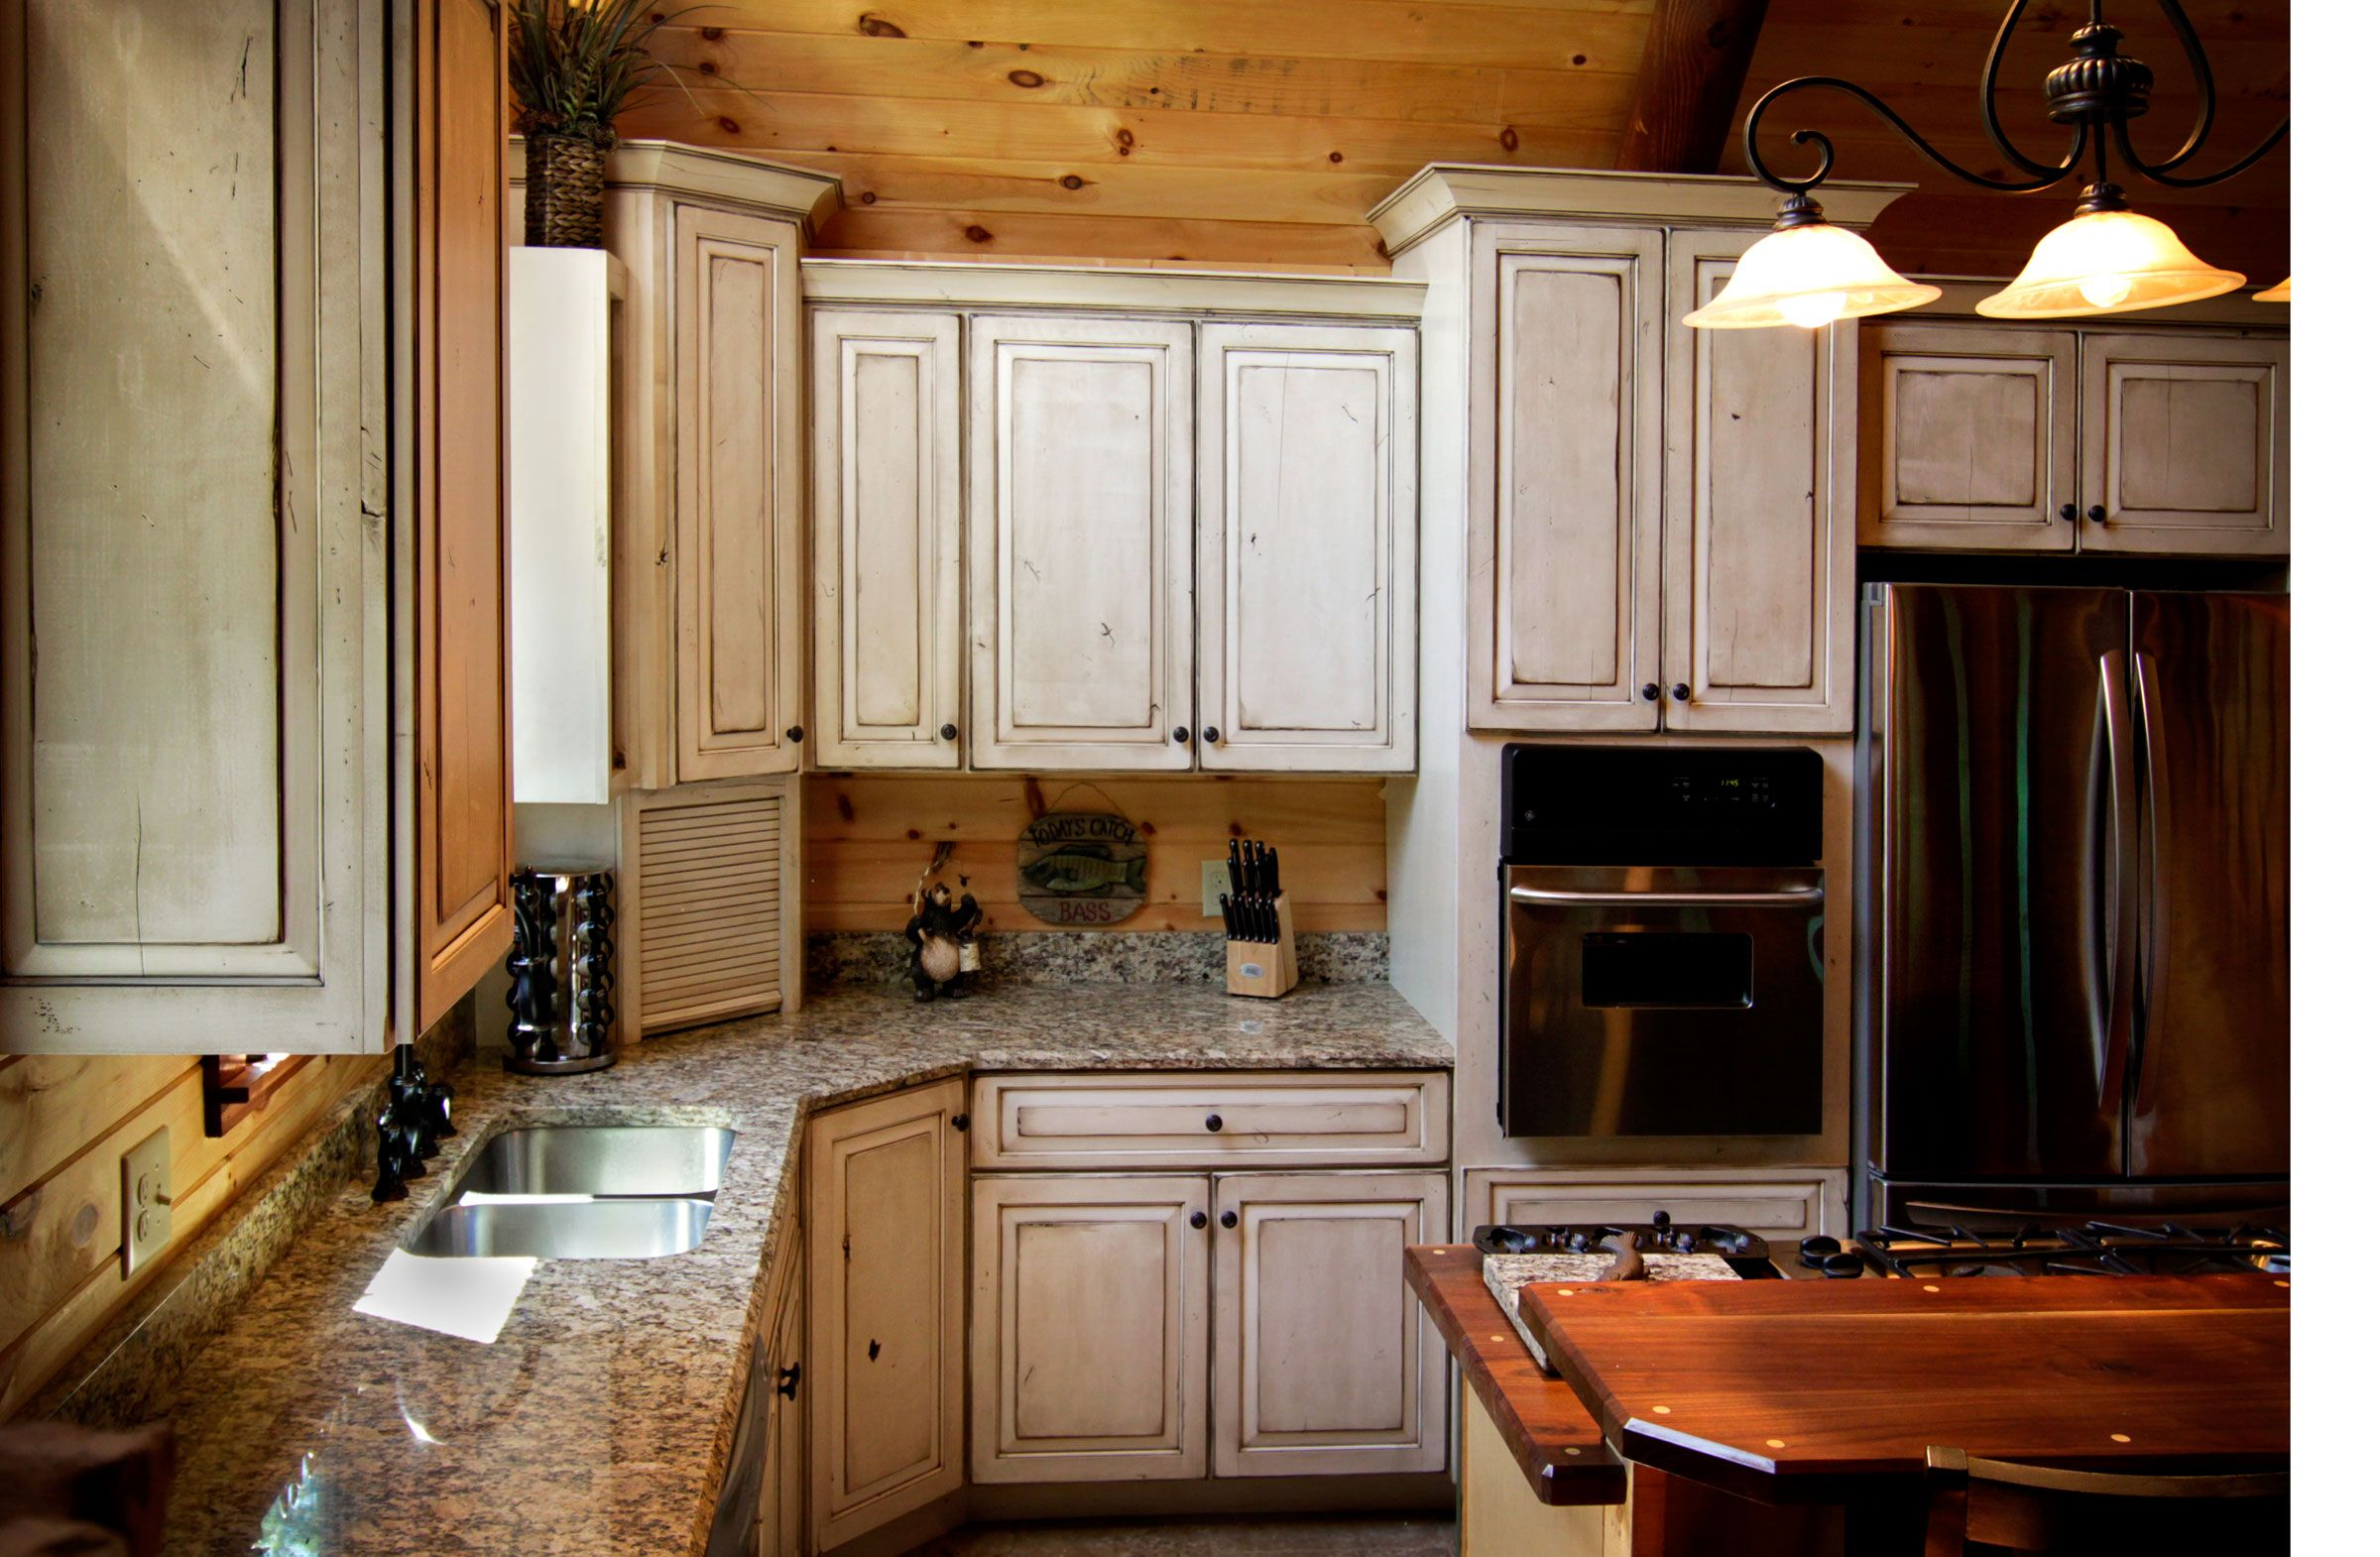 Painted Conversion Varnish With Glazed And Distressed Finish On Knotty Alder Cabinets By Sims Cabi Kitchen Cabinets Repainting Kitchen Cabinets Alder Cabinets